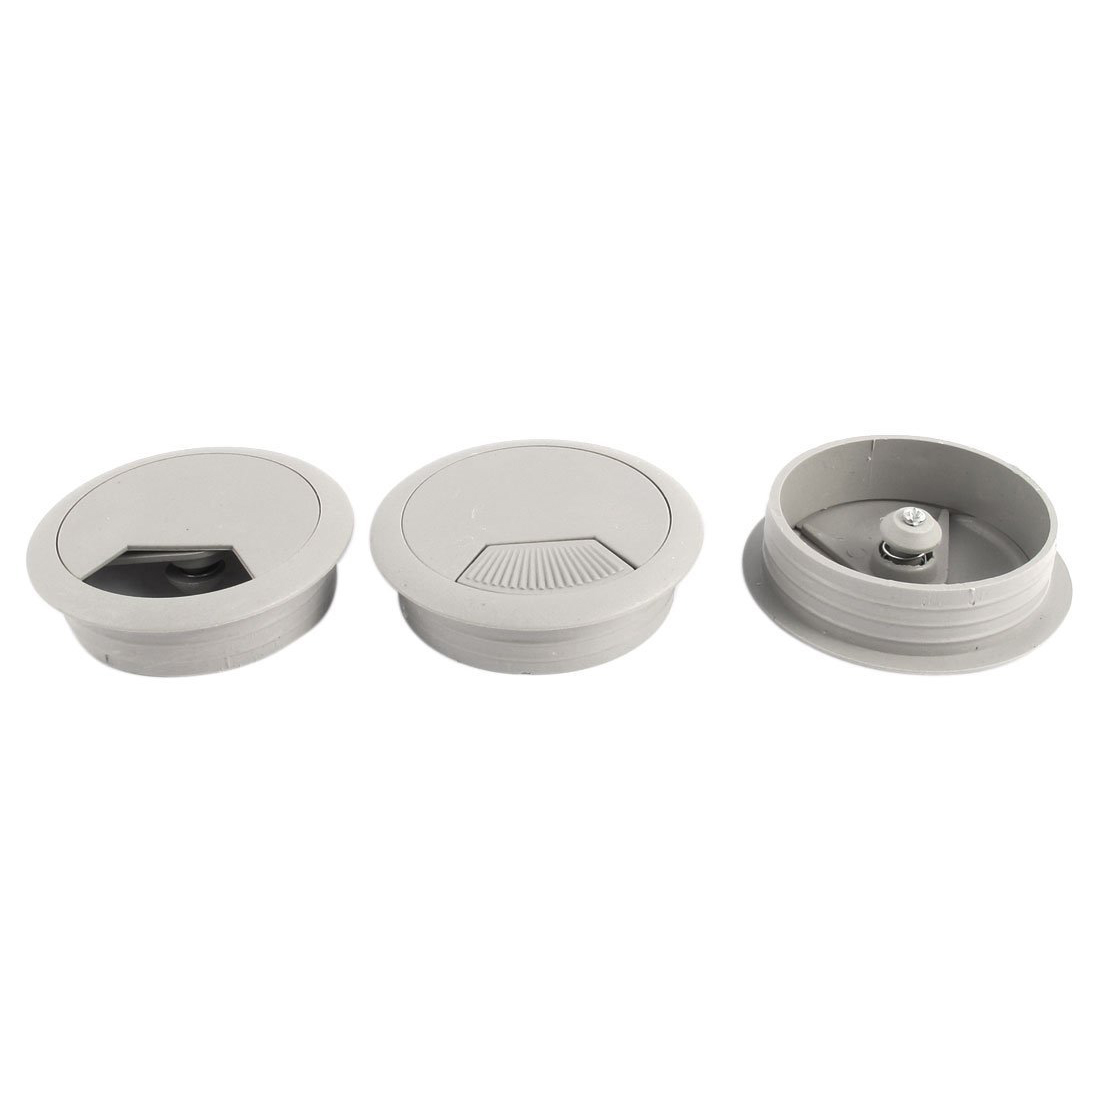 3Pcs Round Plastic Computer Desk Grommet Cable Hole Cover Gray legare straight desk gray driftwood